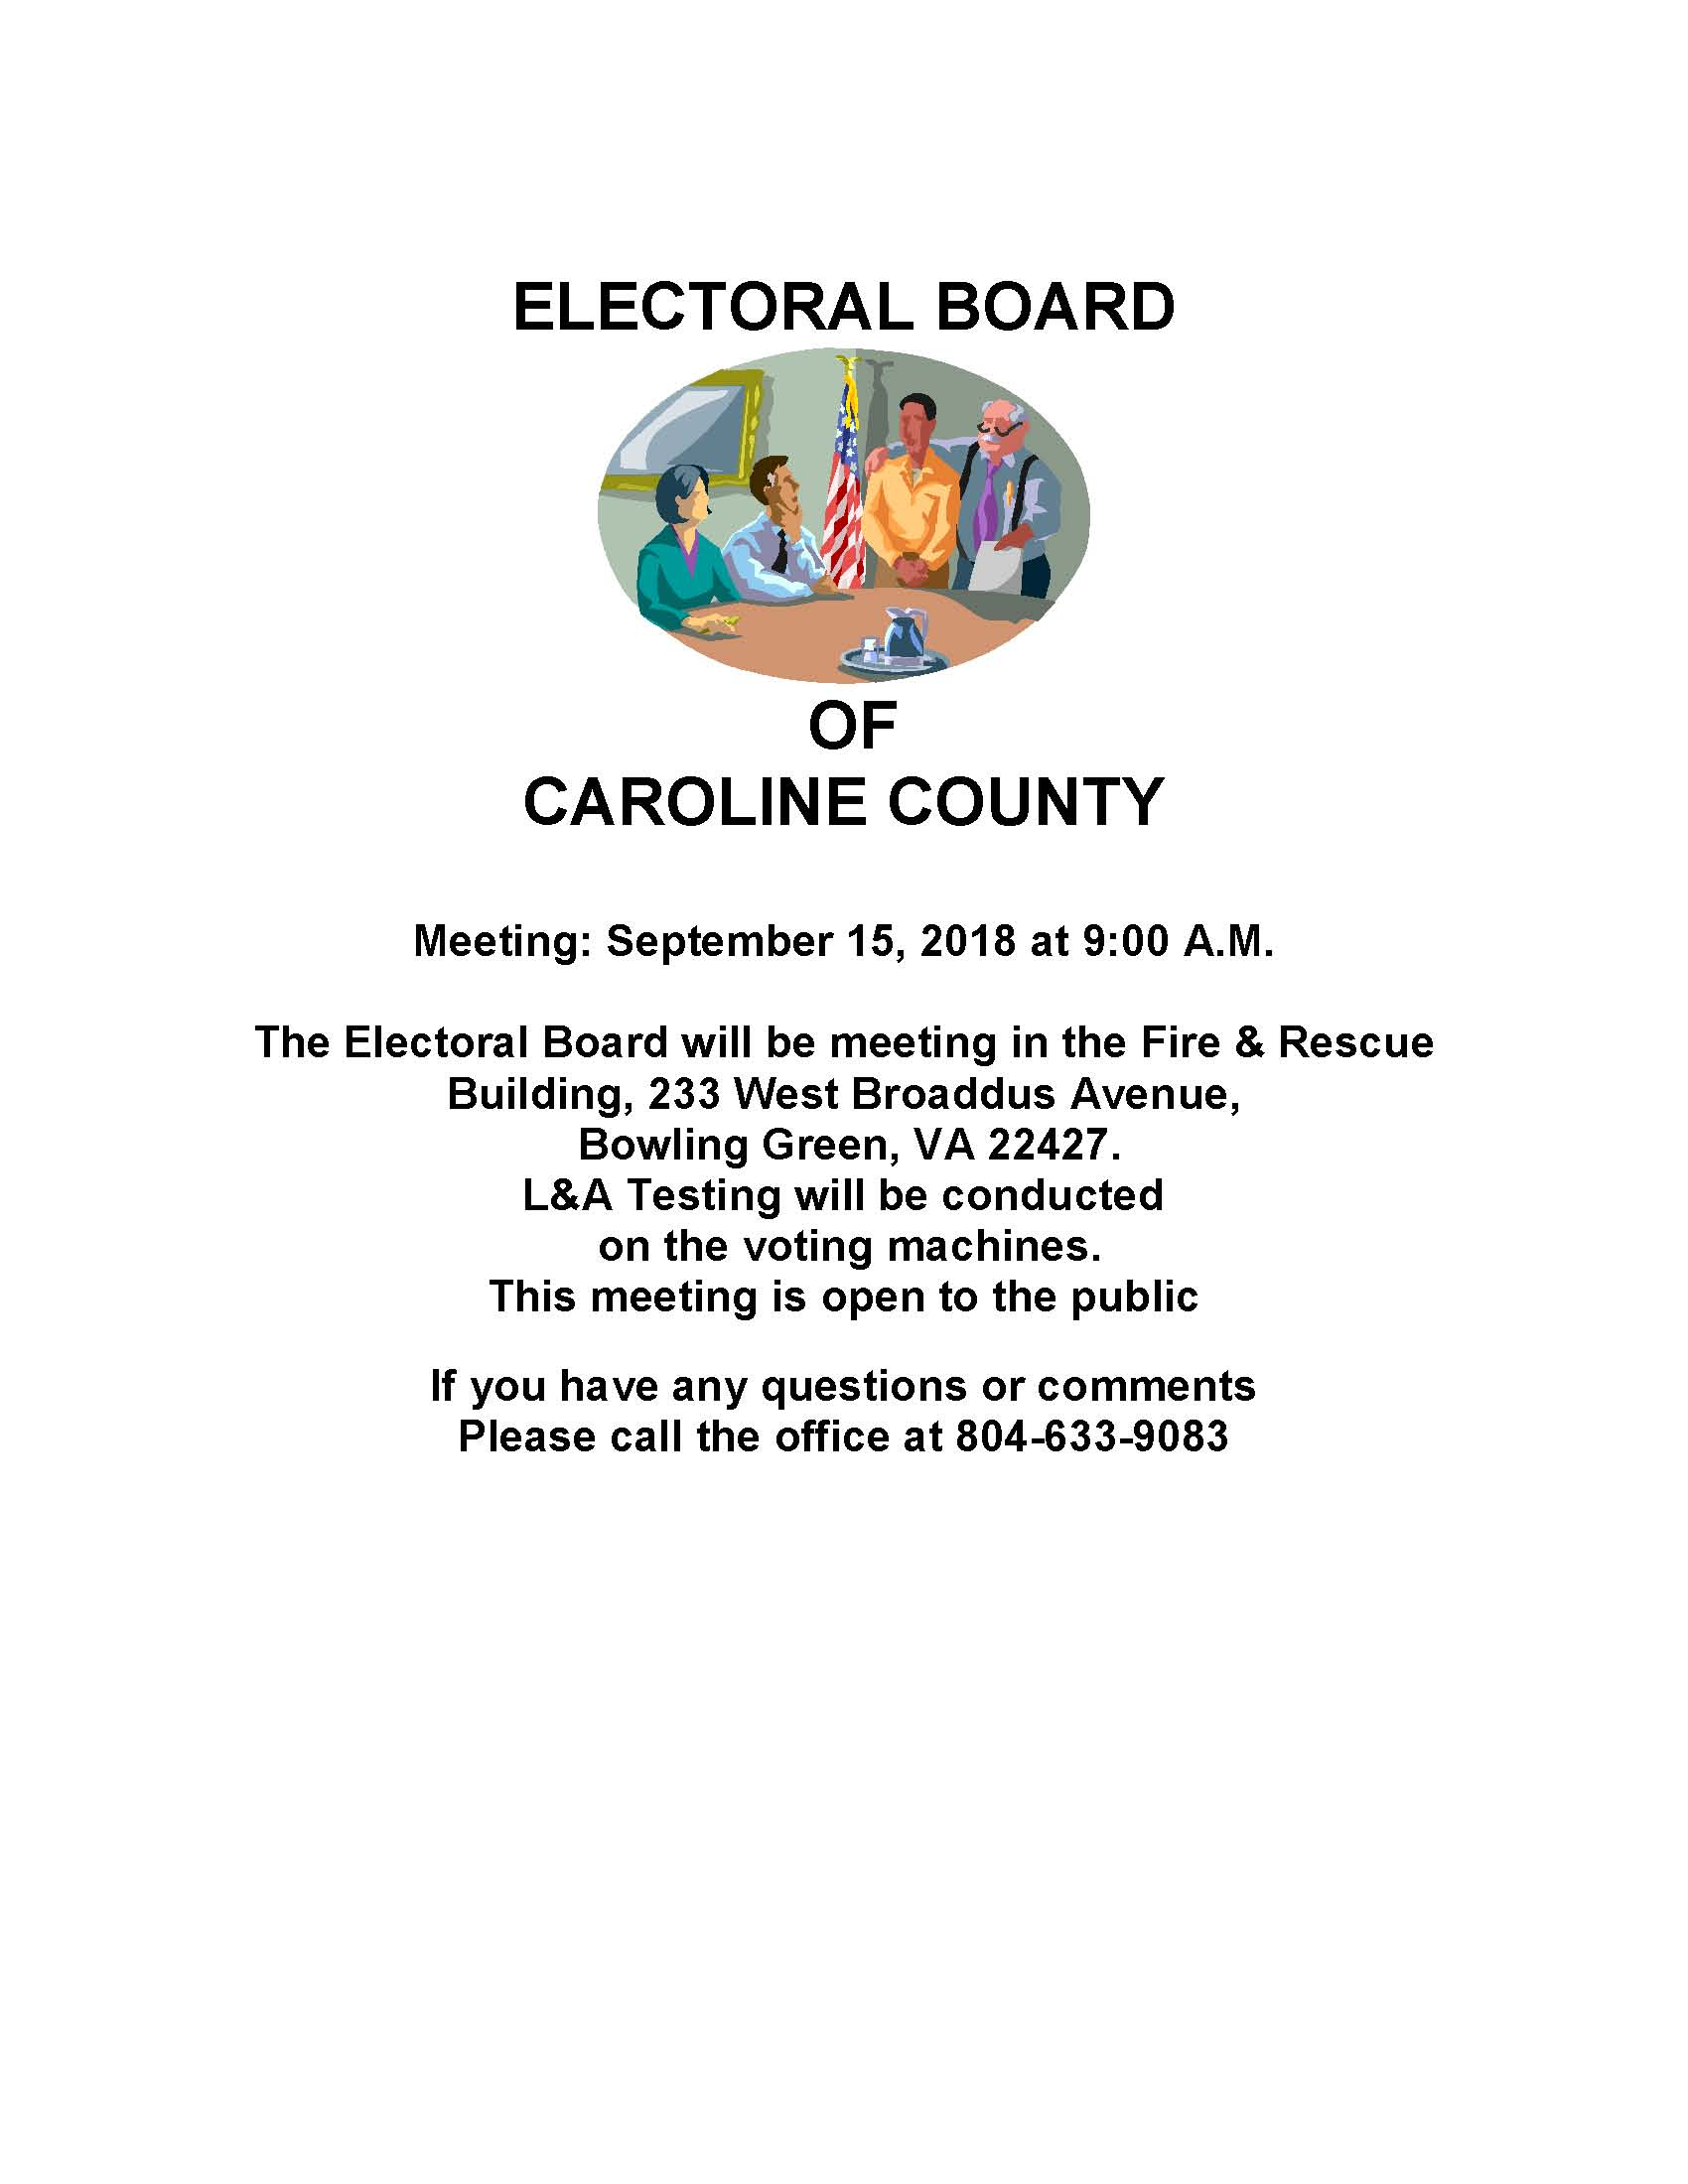 September 15 2018 Electoral Board Meeting Notice